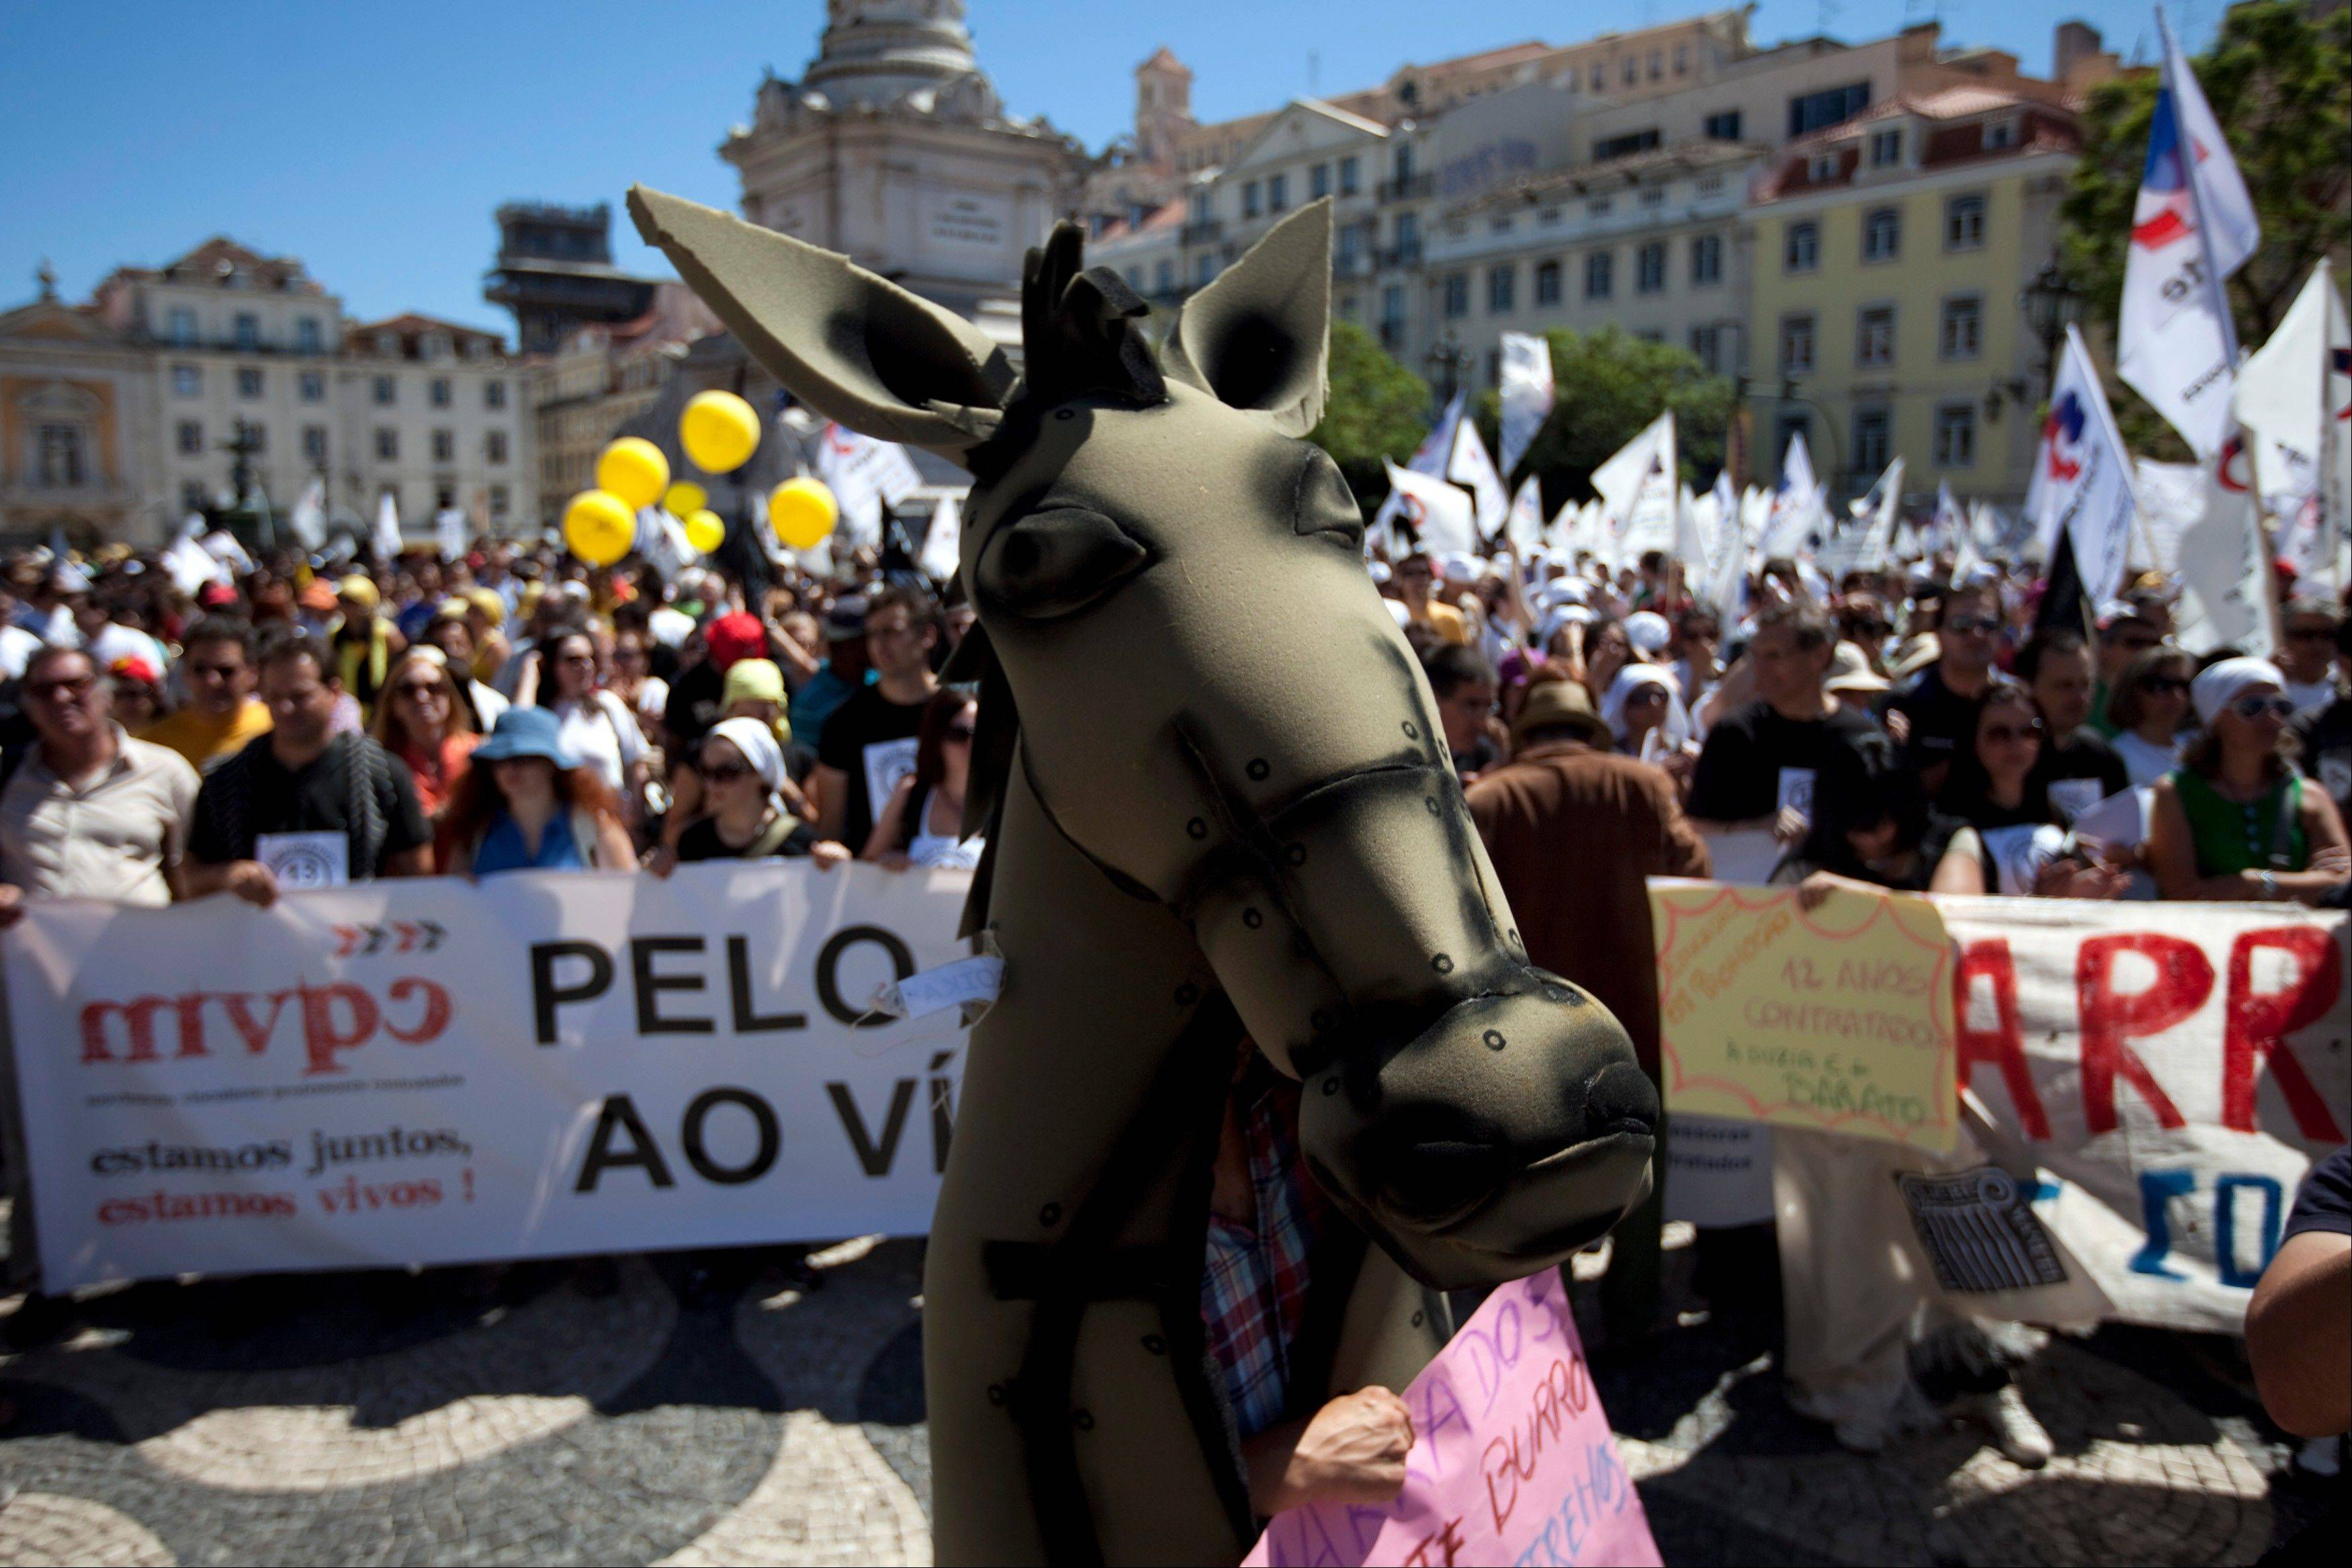 A protestor wearing a donkey costume walks among thousands of others gathered in Lisbon�s main Rossio square Thursday, during a teachers demonstration protesting the government�s education budget cuts. Concerns over Europe�s financial crisis weighed U.S. markets down Thursday.